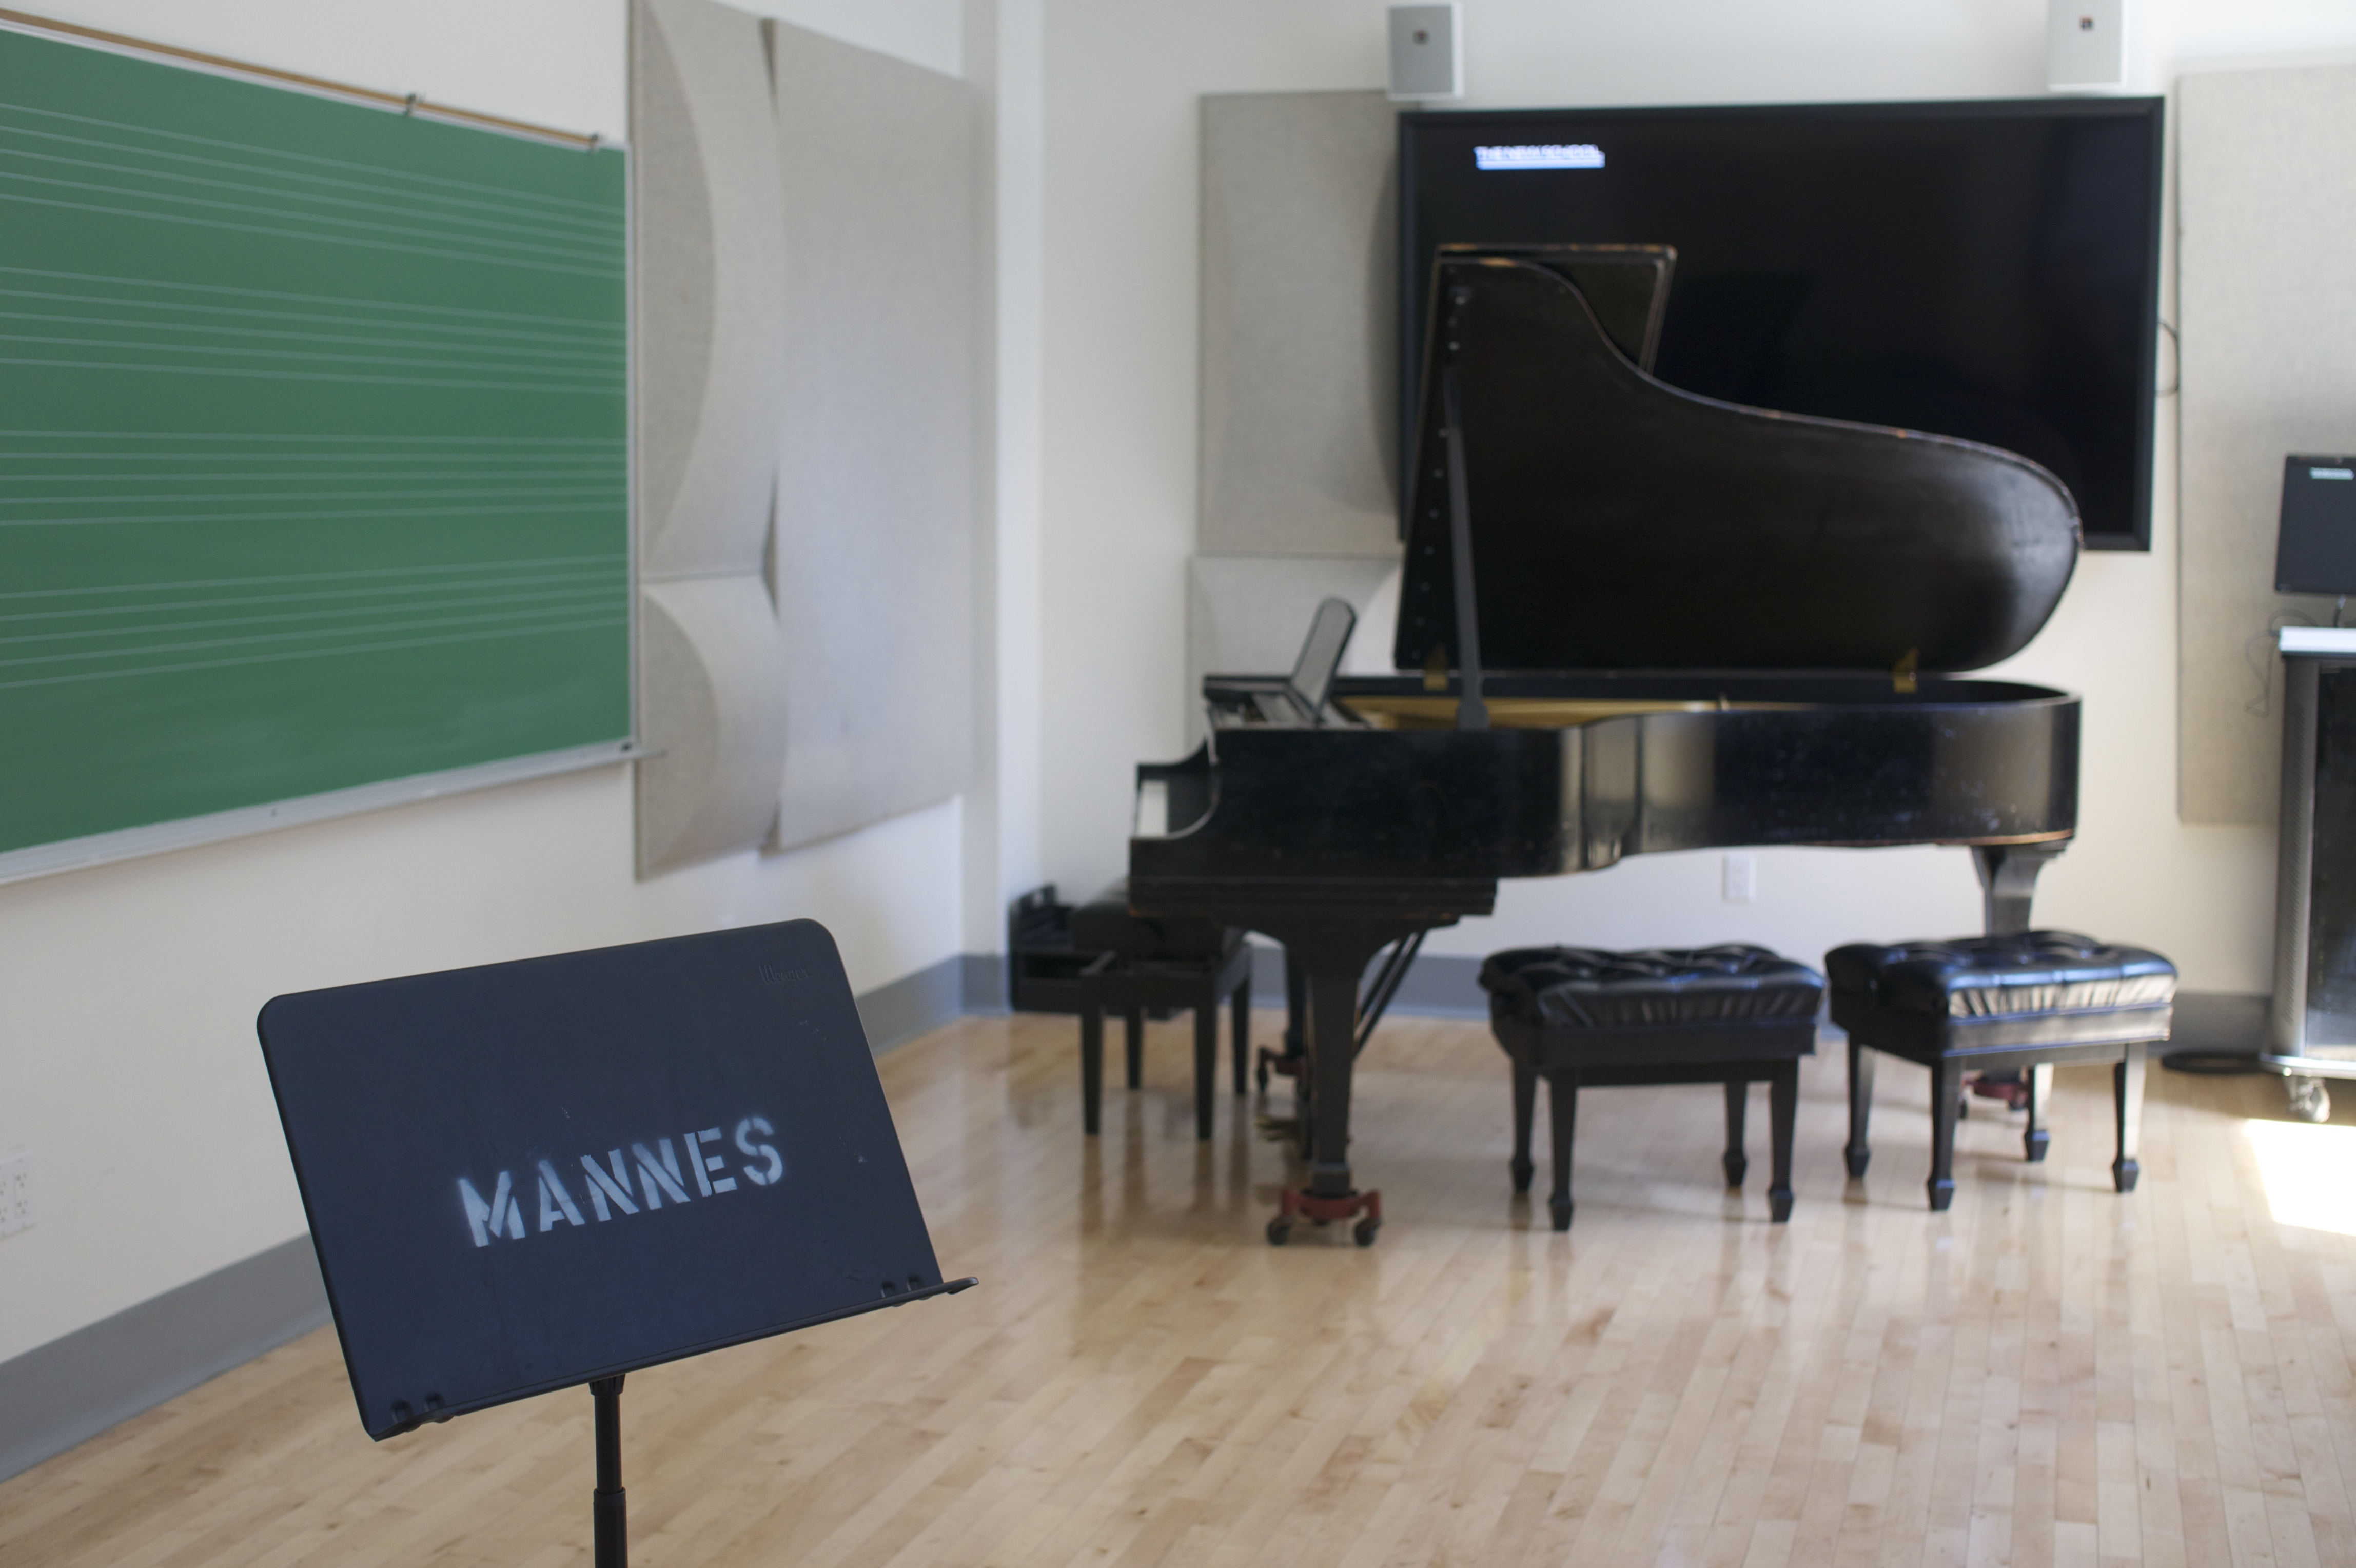 30 year old jazz school practice spaces require renovation